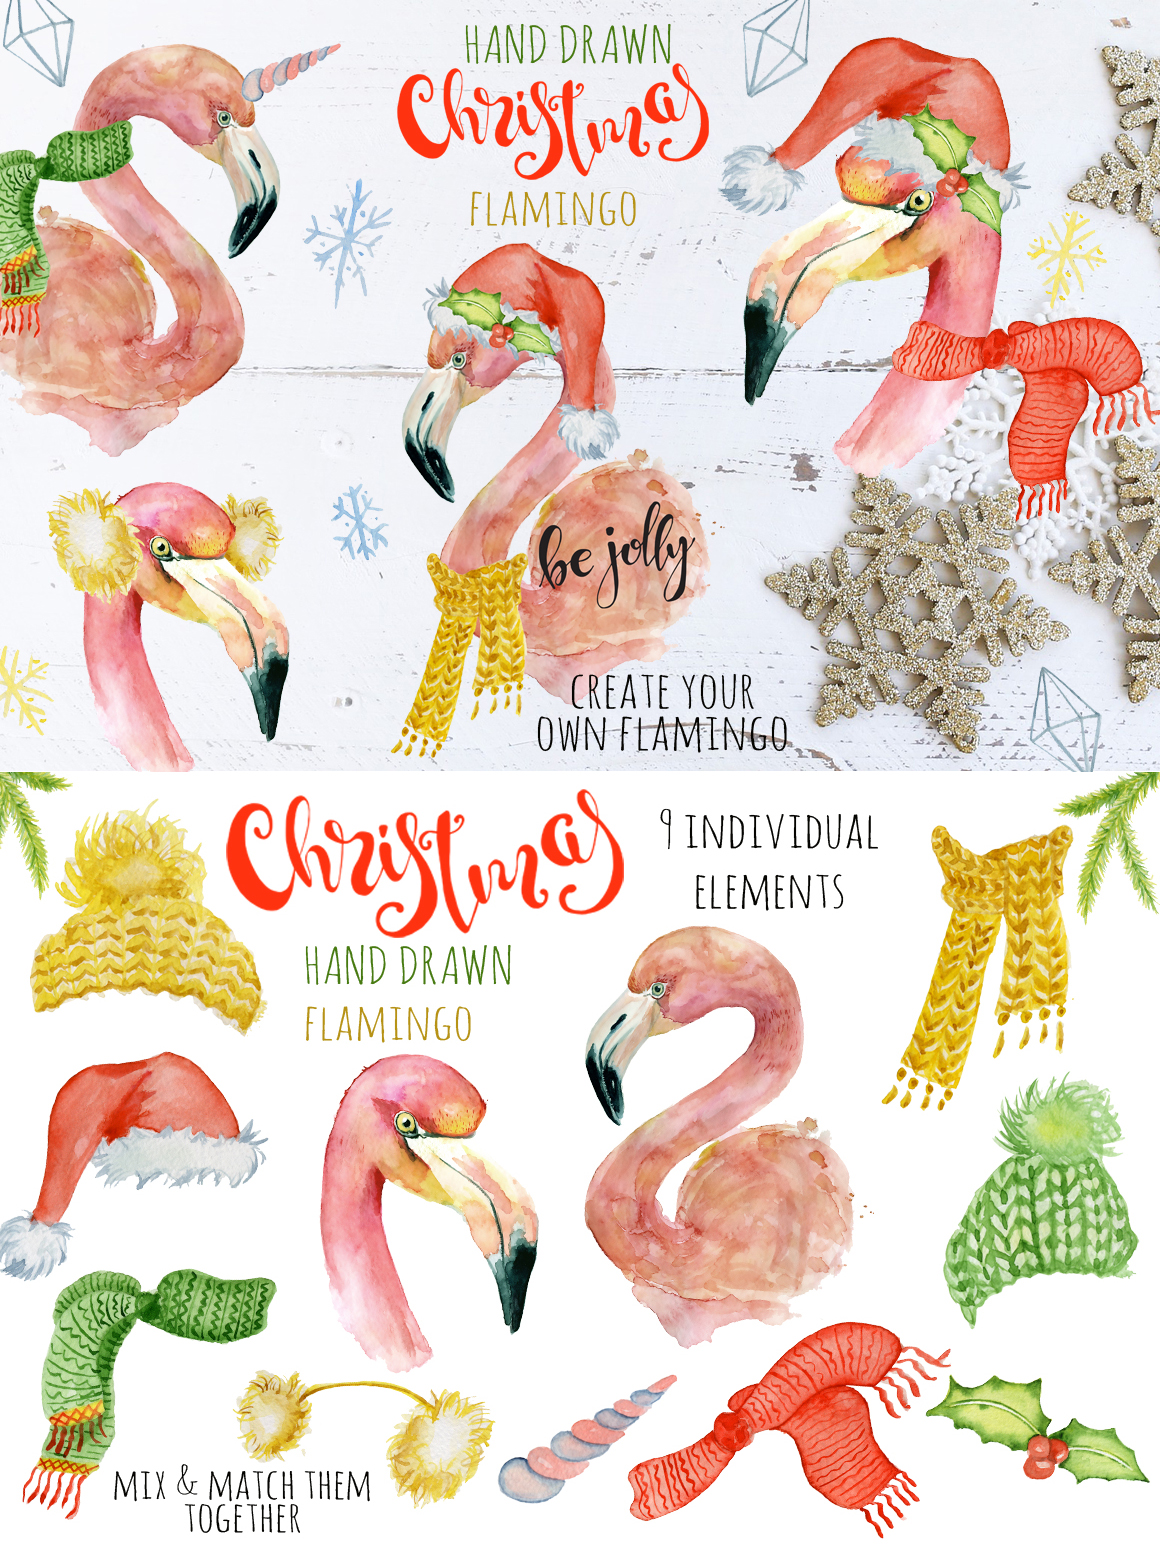 Magical Winter Clipart: 14 Christmas Watercolor Clipart Bundles in 1 - $28 - 12 Flamingo